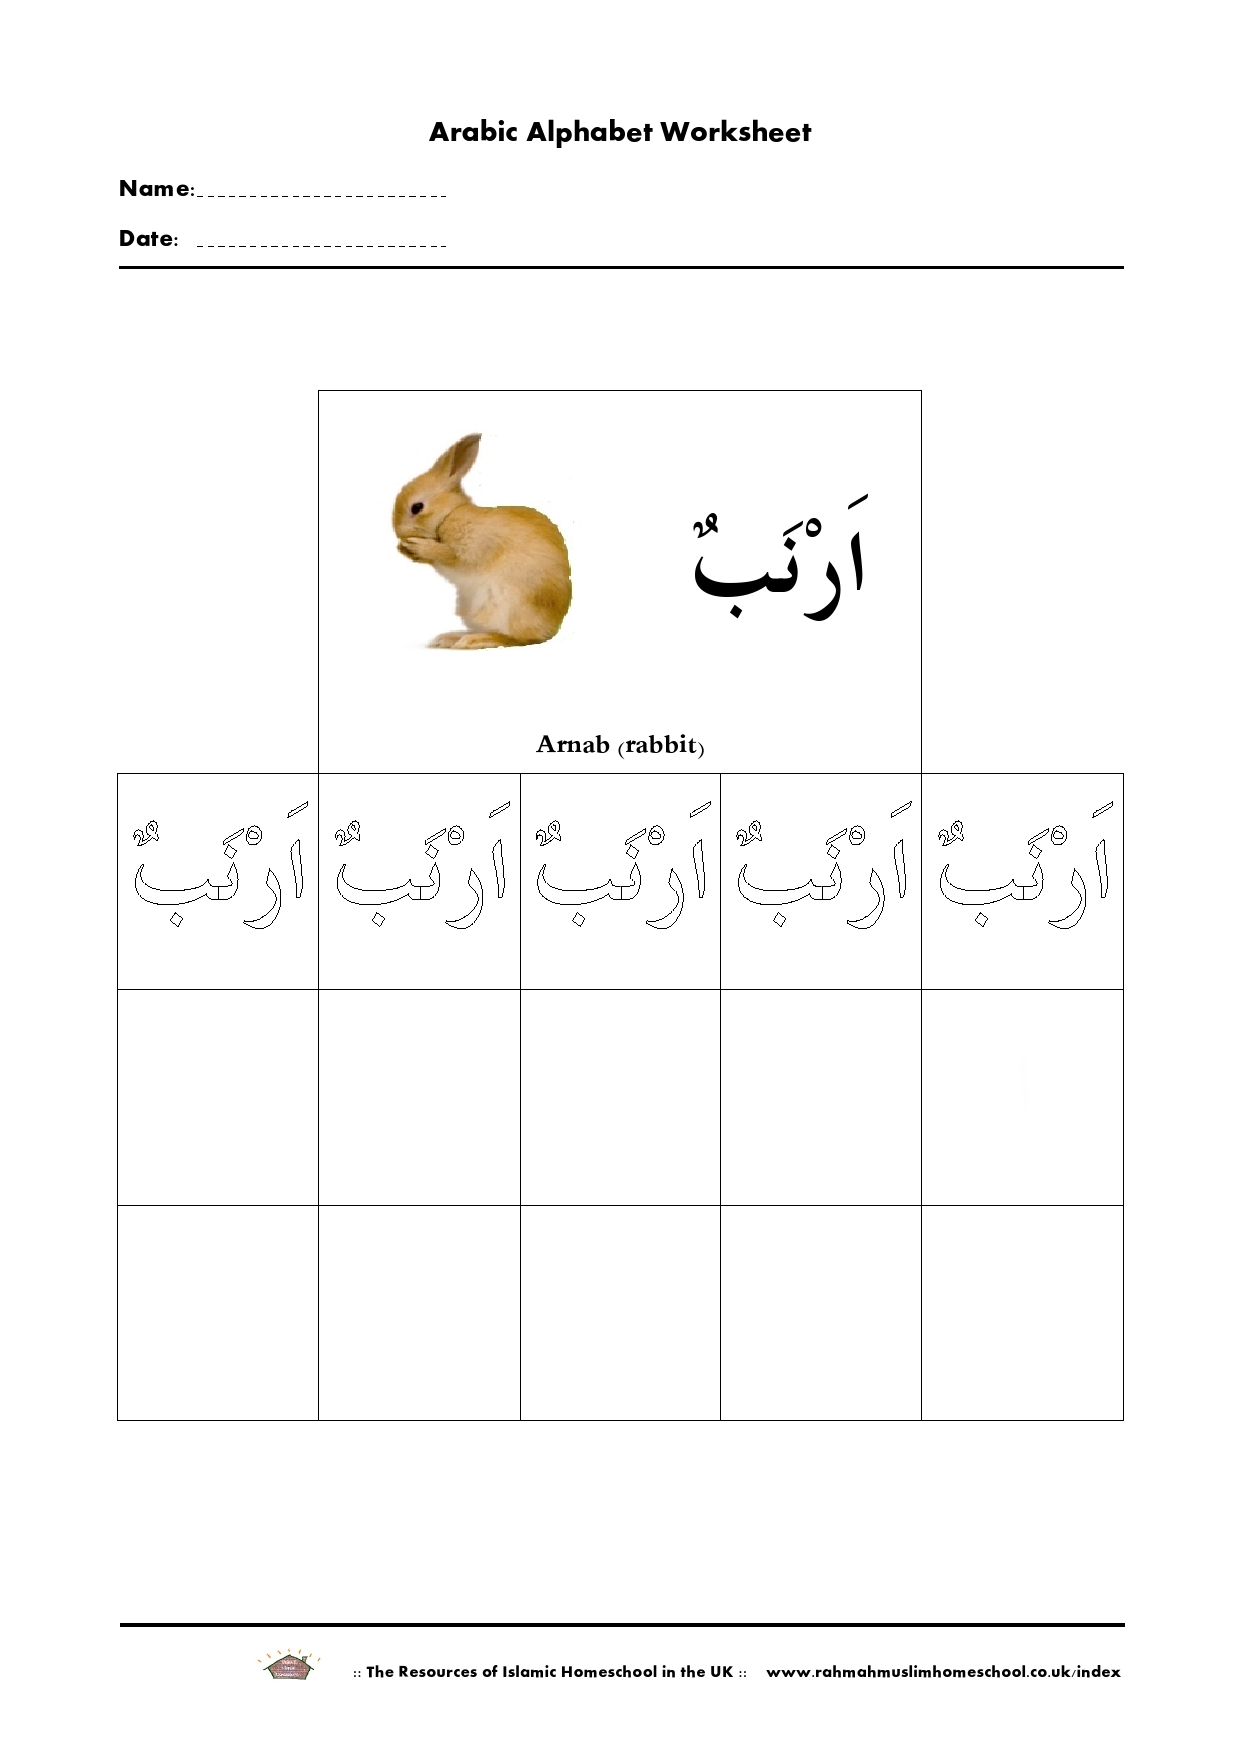 Free arabic alphabet worksheet alif is for arnab a rabbit free arabic alphabet worksheet alif is for arnab a rabbit the resources of islamic homeschool in the uk robcynllc Gallery